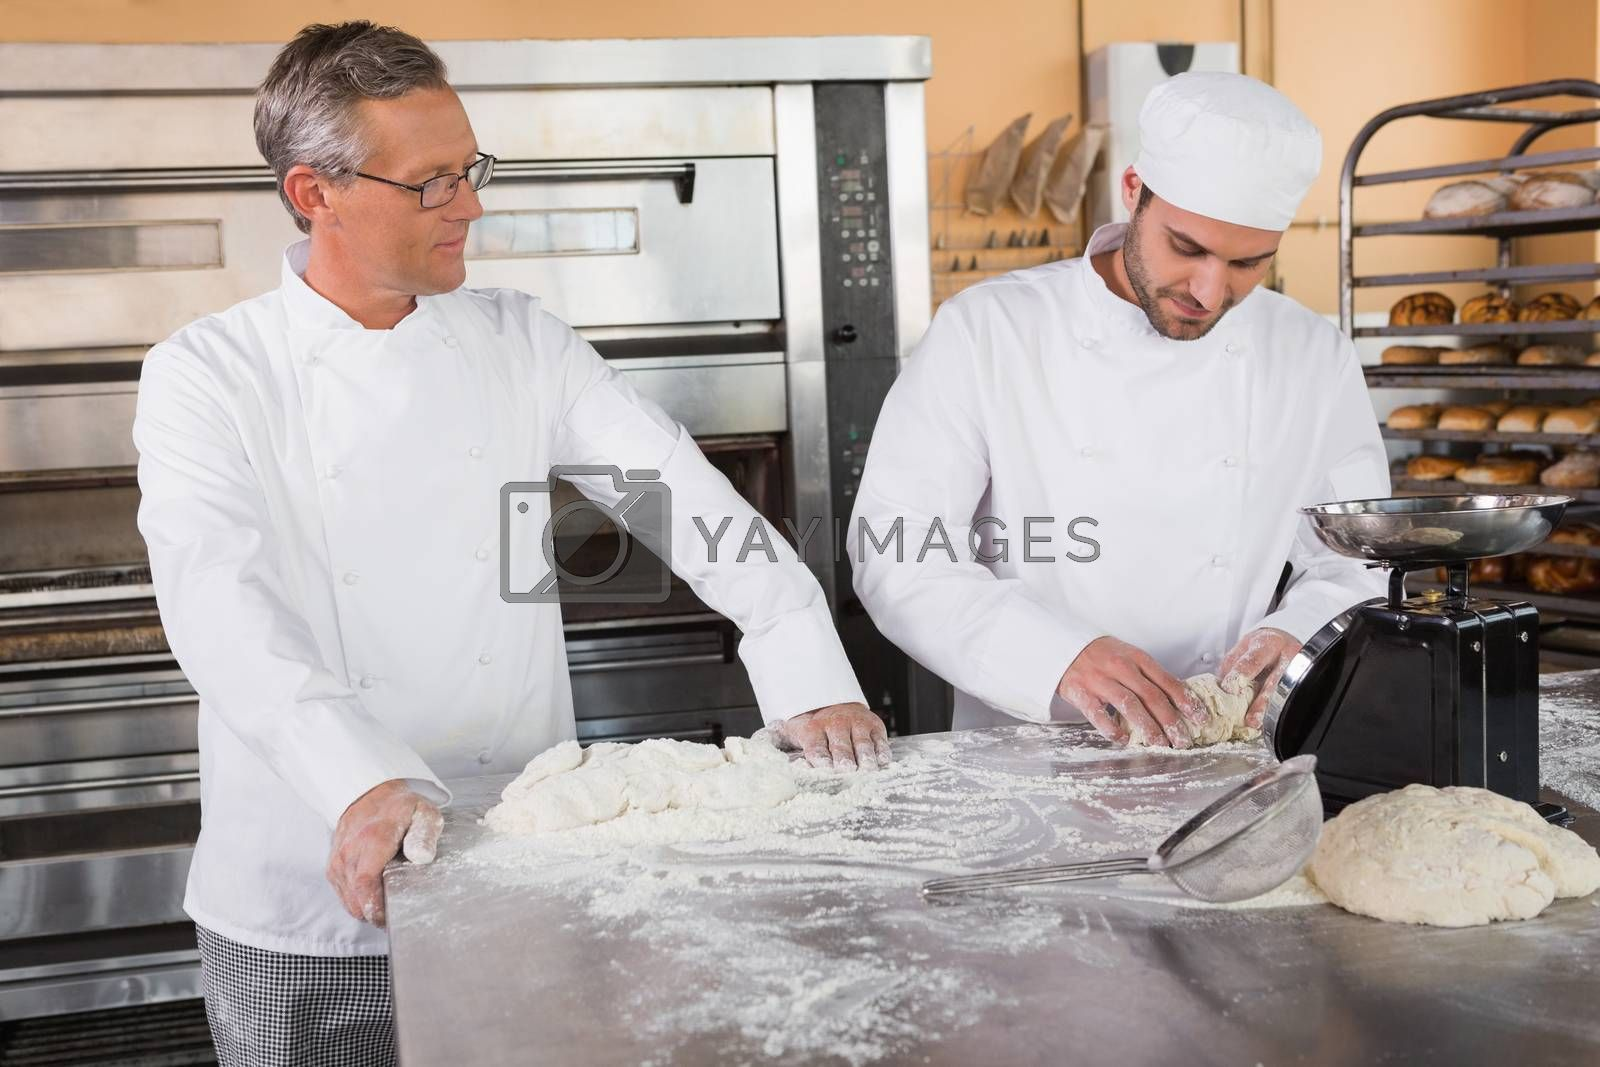 Baker looking his colleague kneading dough in the kitchen of the bakery